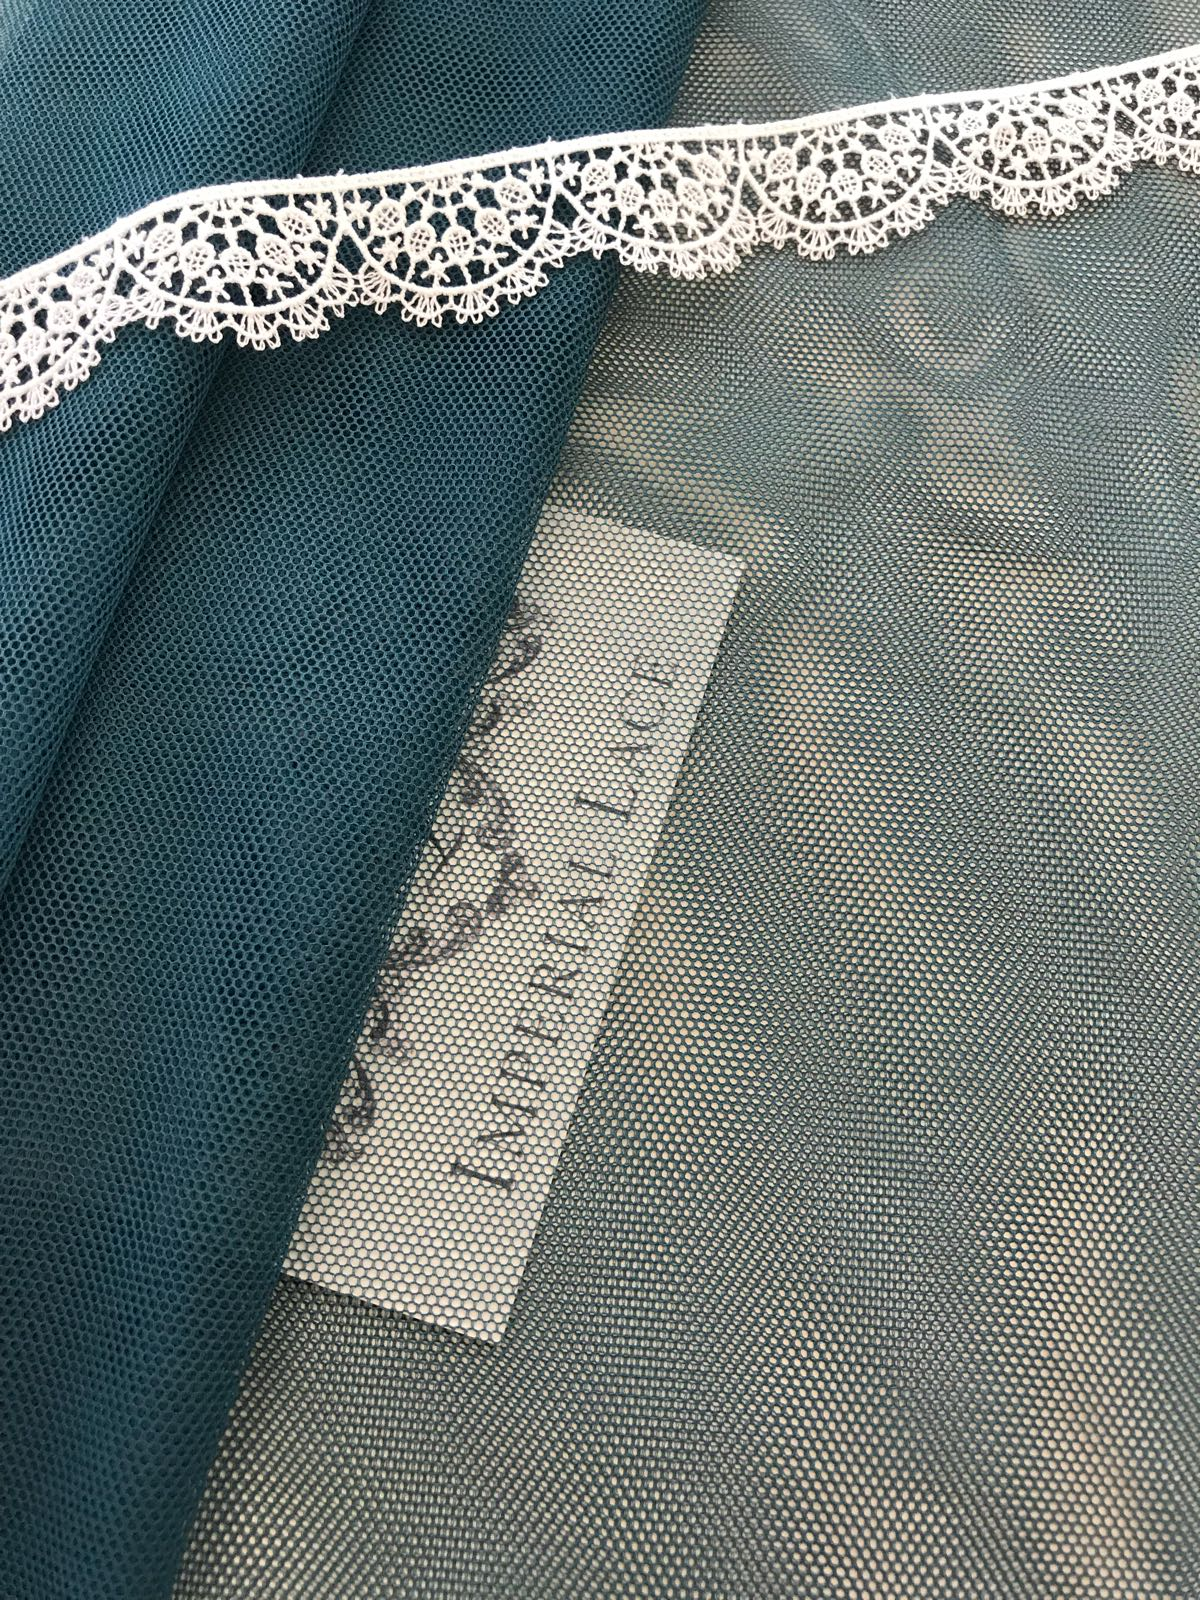 Dark Green Tulle Fabric Tulle Lace Fabric From